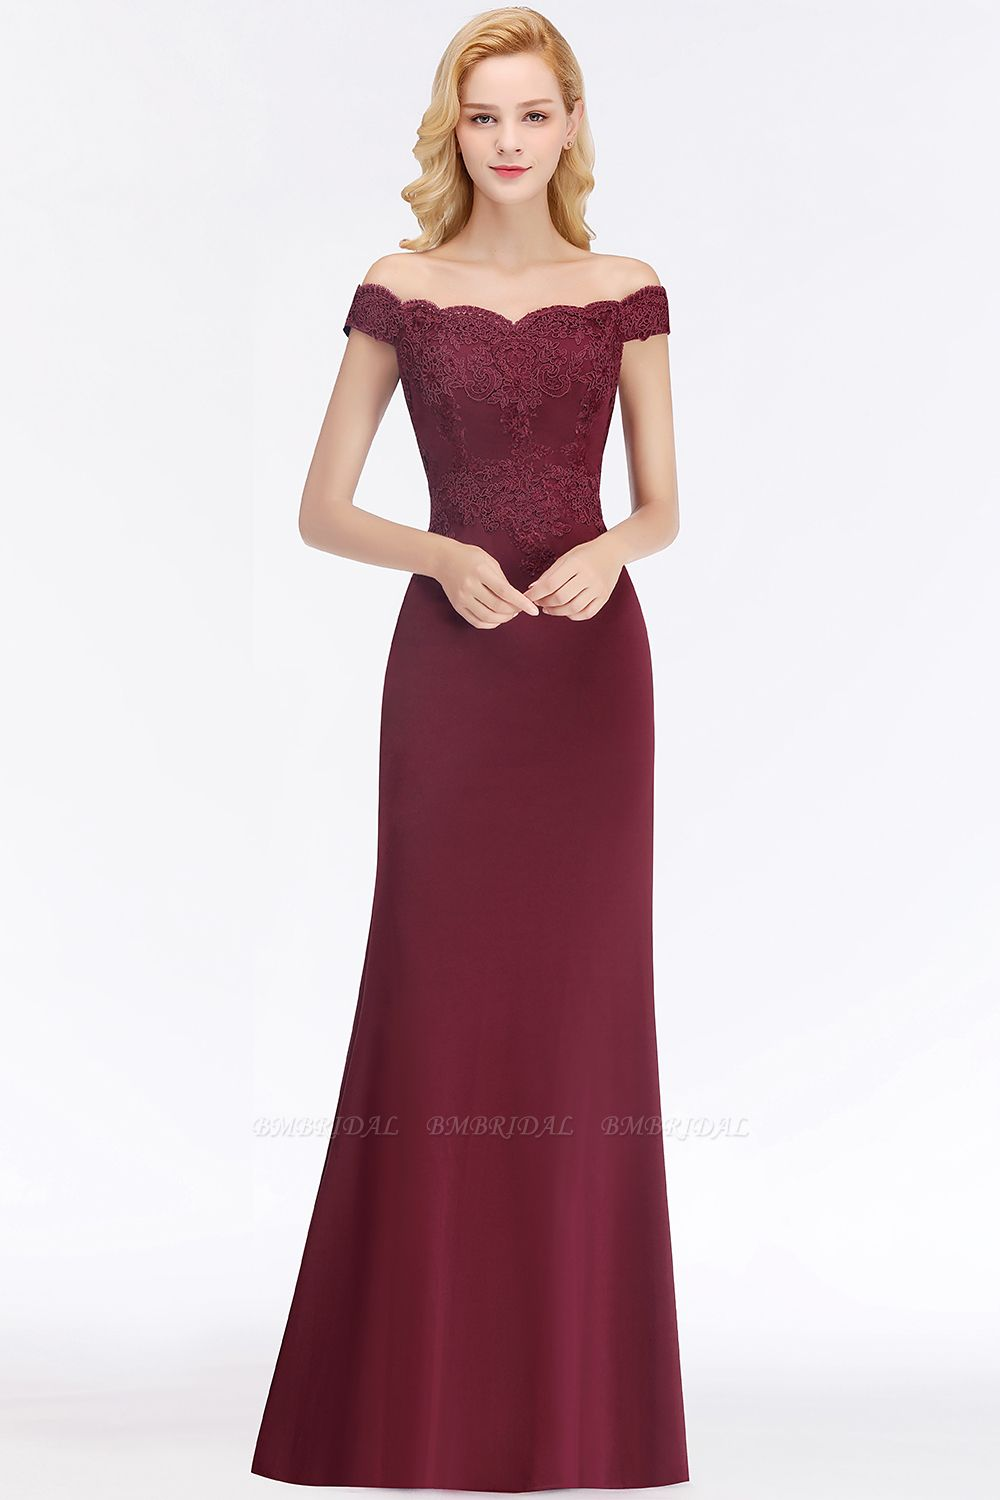 BMbridal Elegant Mermaid Off-the-Shoulder Burgundy Bridesmaid Dresses with Lace